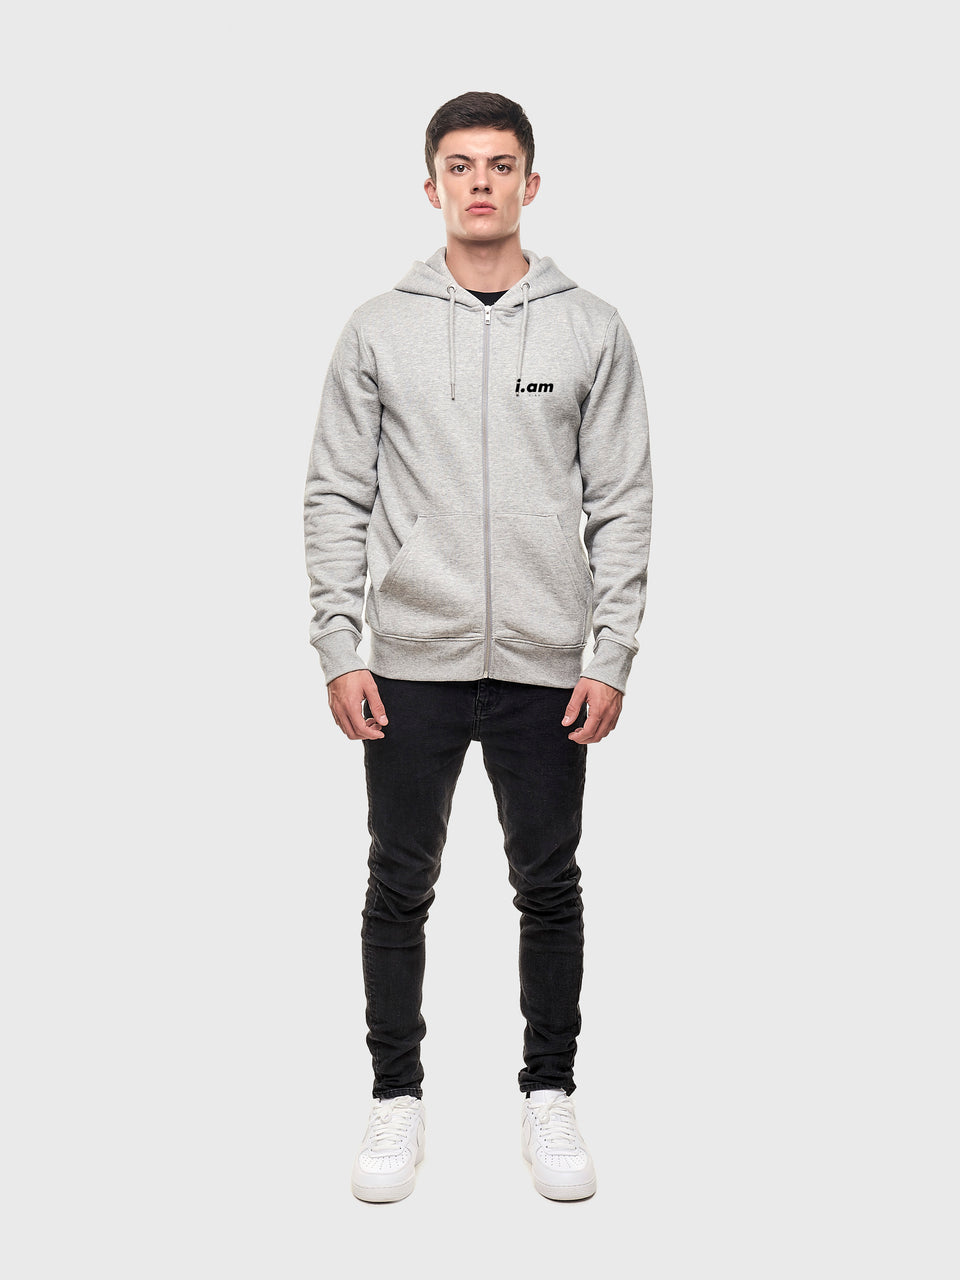 Am.bisch.ous - Grey - Unisex zip up hoodie